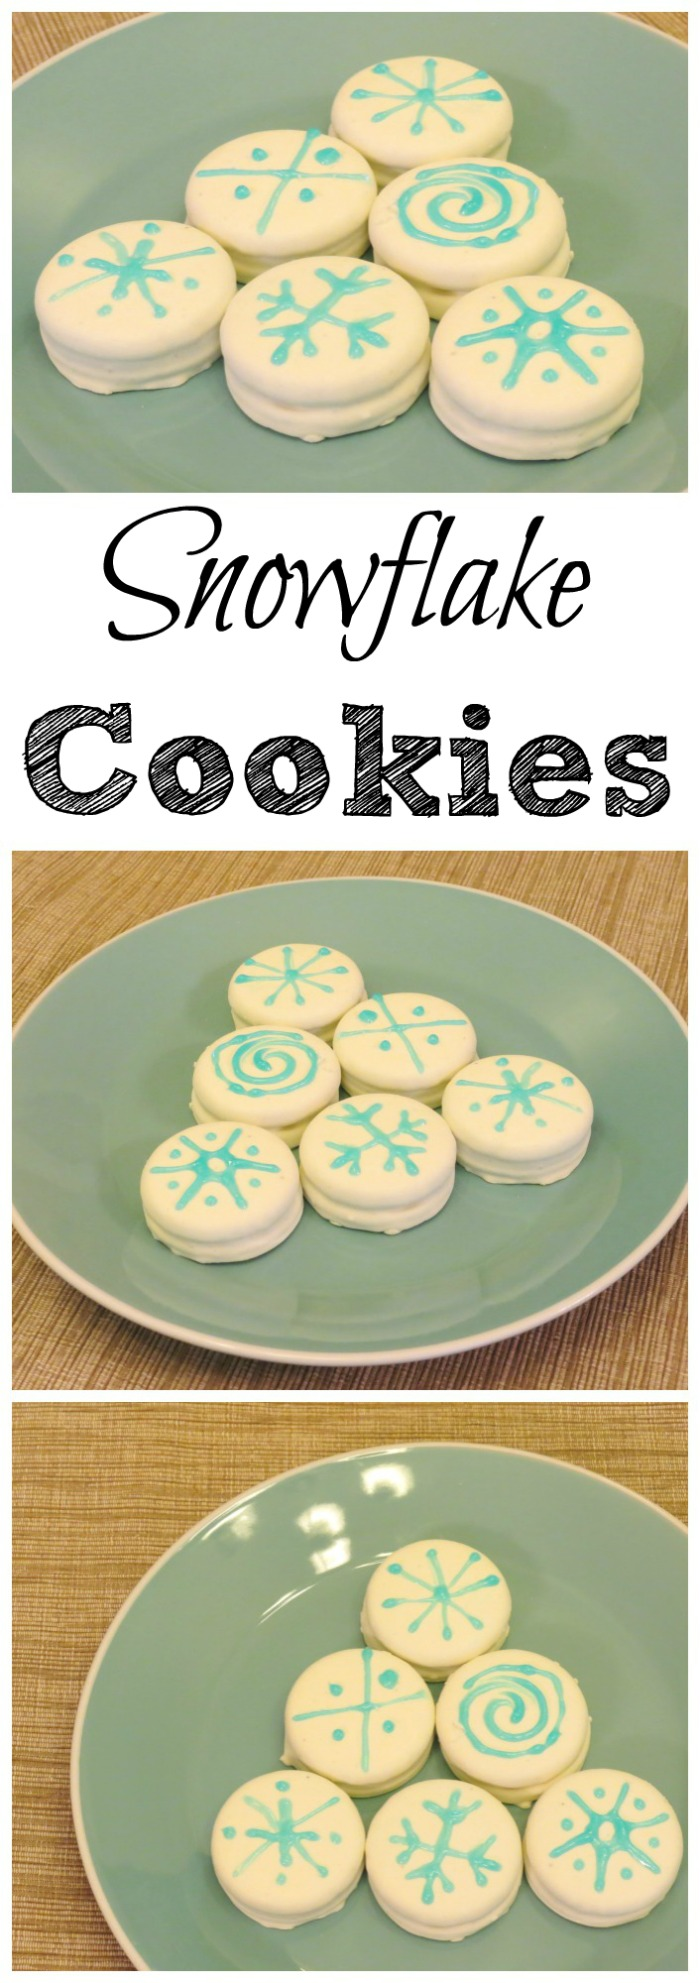 Looking for a fun snow day activity to do with the kids? Kids will love making these snowflake cookies. Avoid snow day blues with a delicious distraction